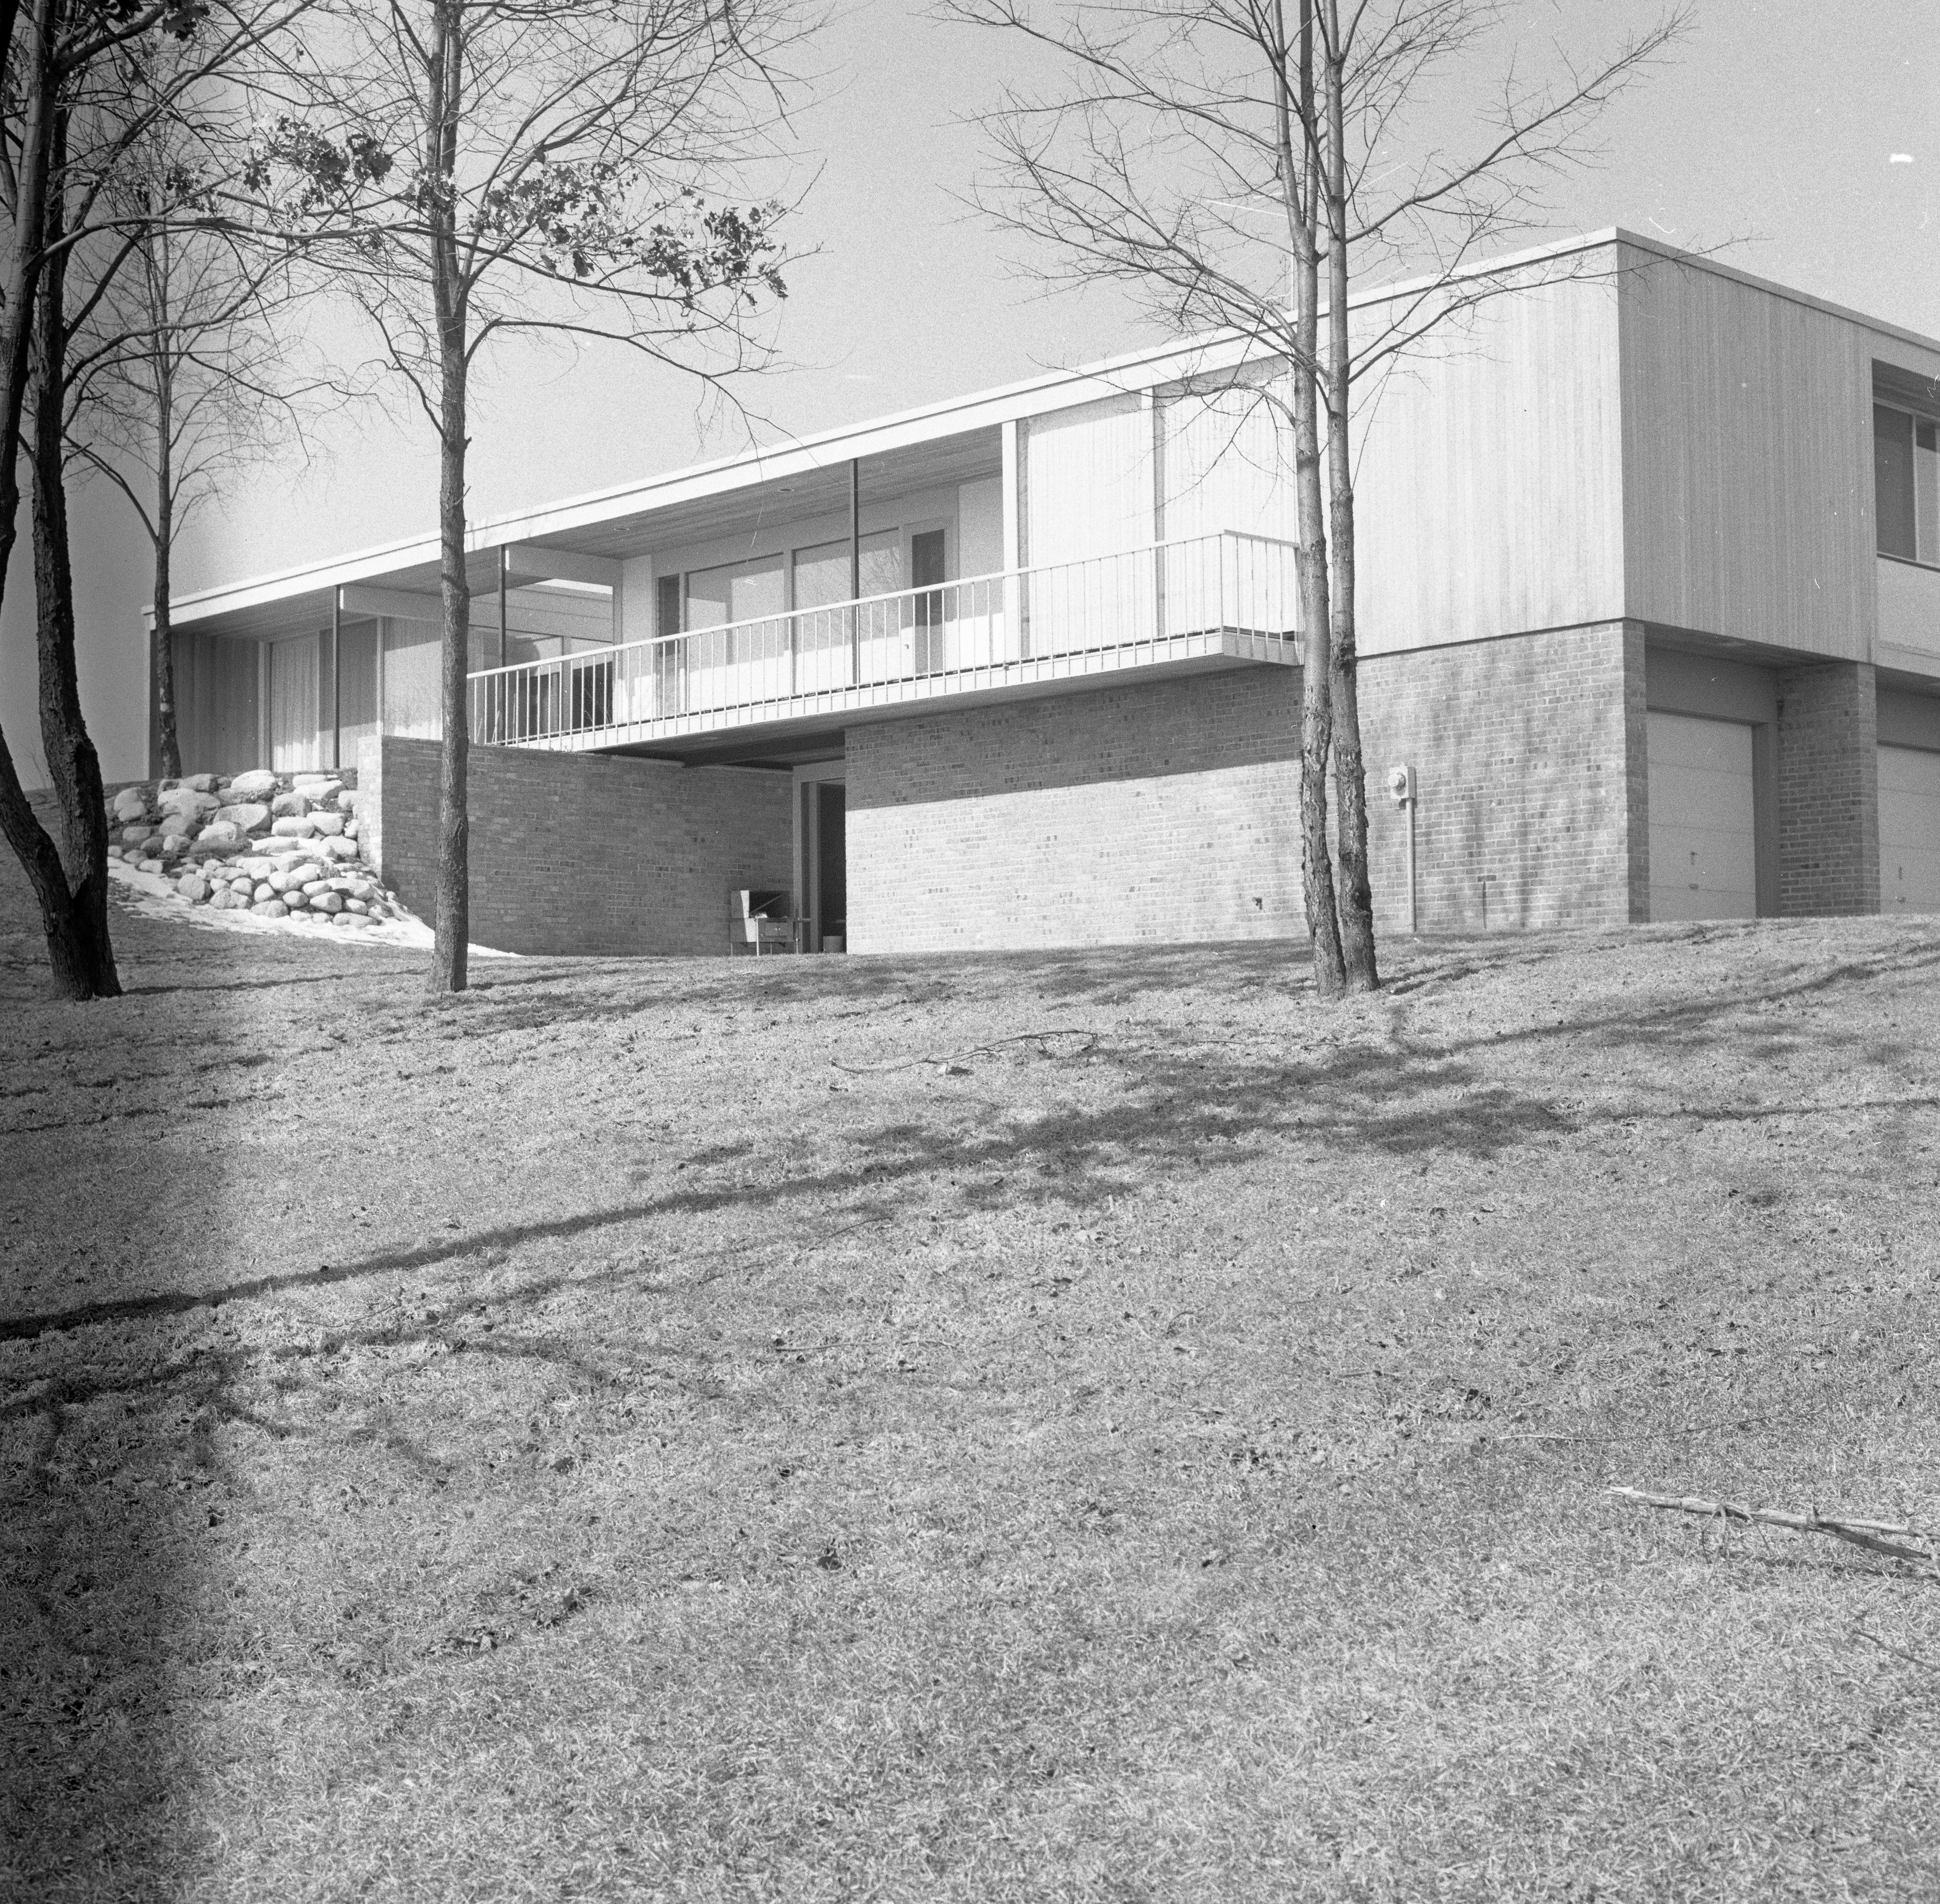 Botch Home on Chestnut Rd a Mid-Century Modern Bi-Level, March 1959 image